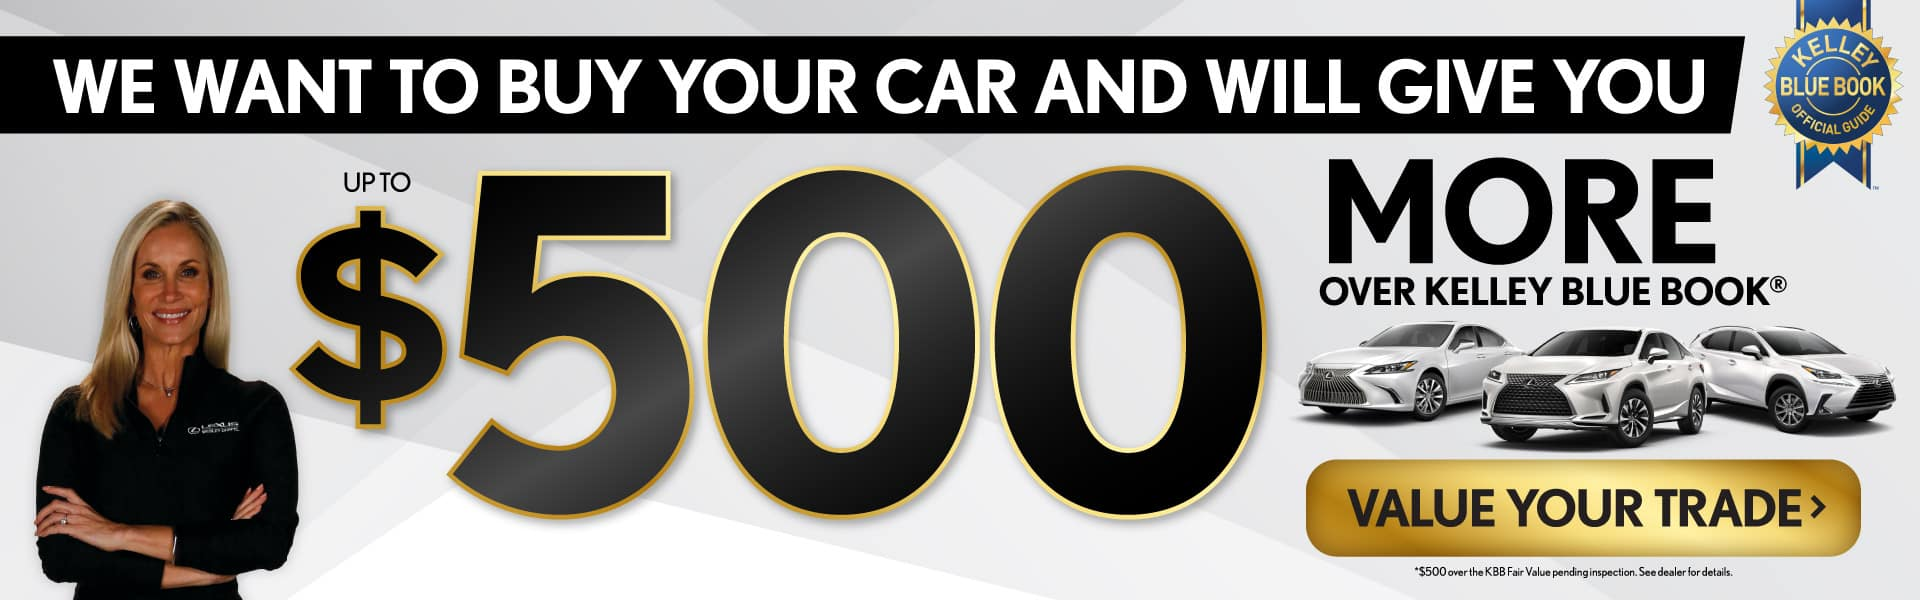 We want to buy your car and will give you up to $500 More Over KBB - Click to Value Your Trade